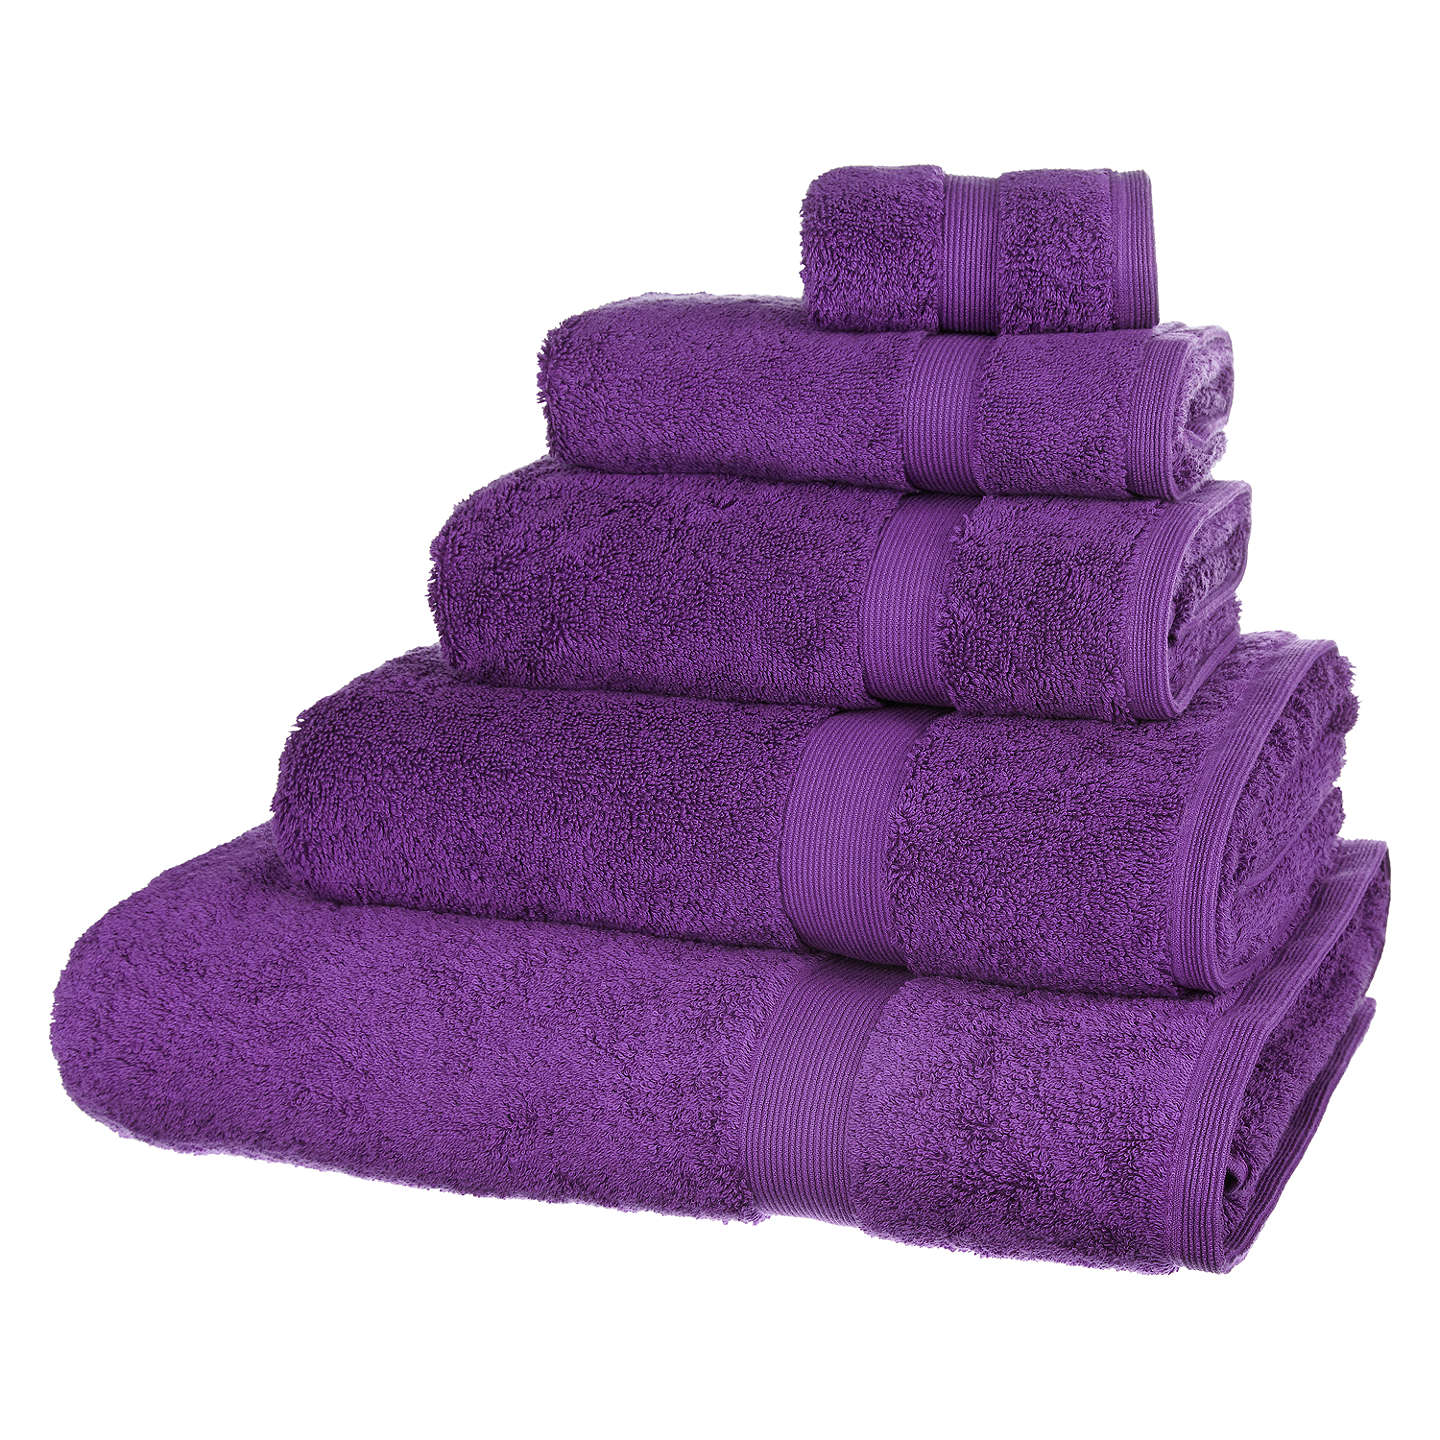 BuyJohn Lewis Egyptian Cotton Face Cloth, Purple Online at johnlewis.com